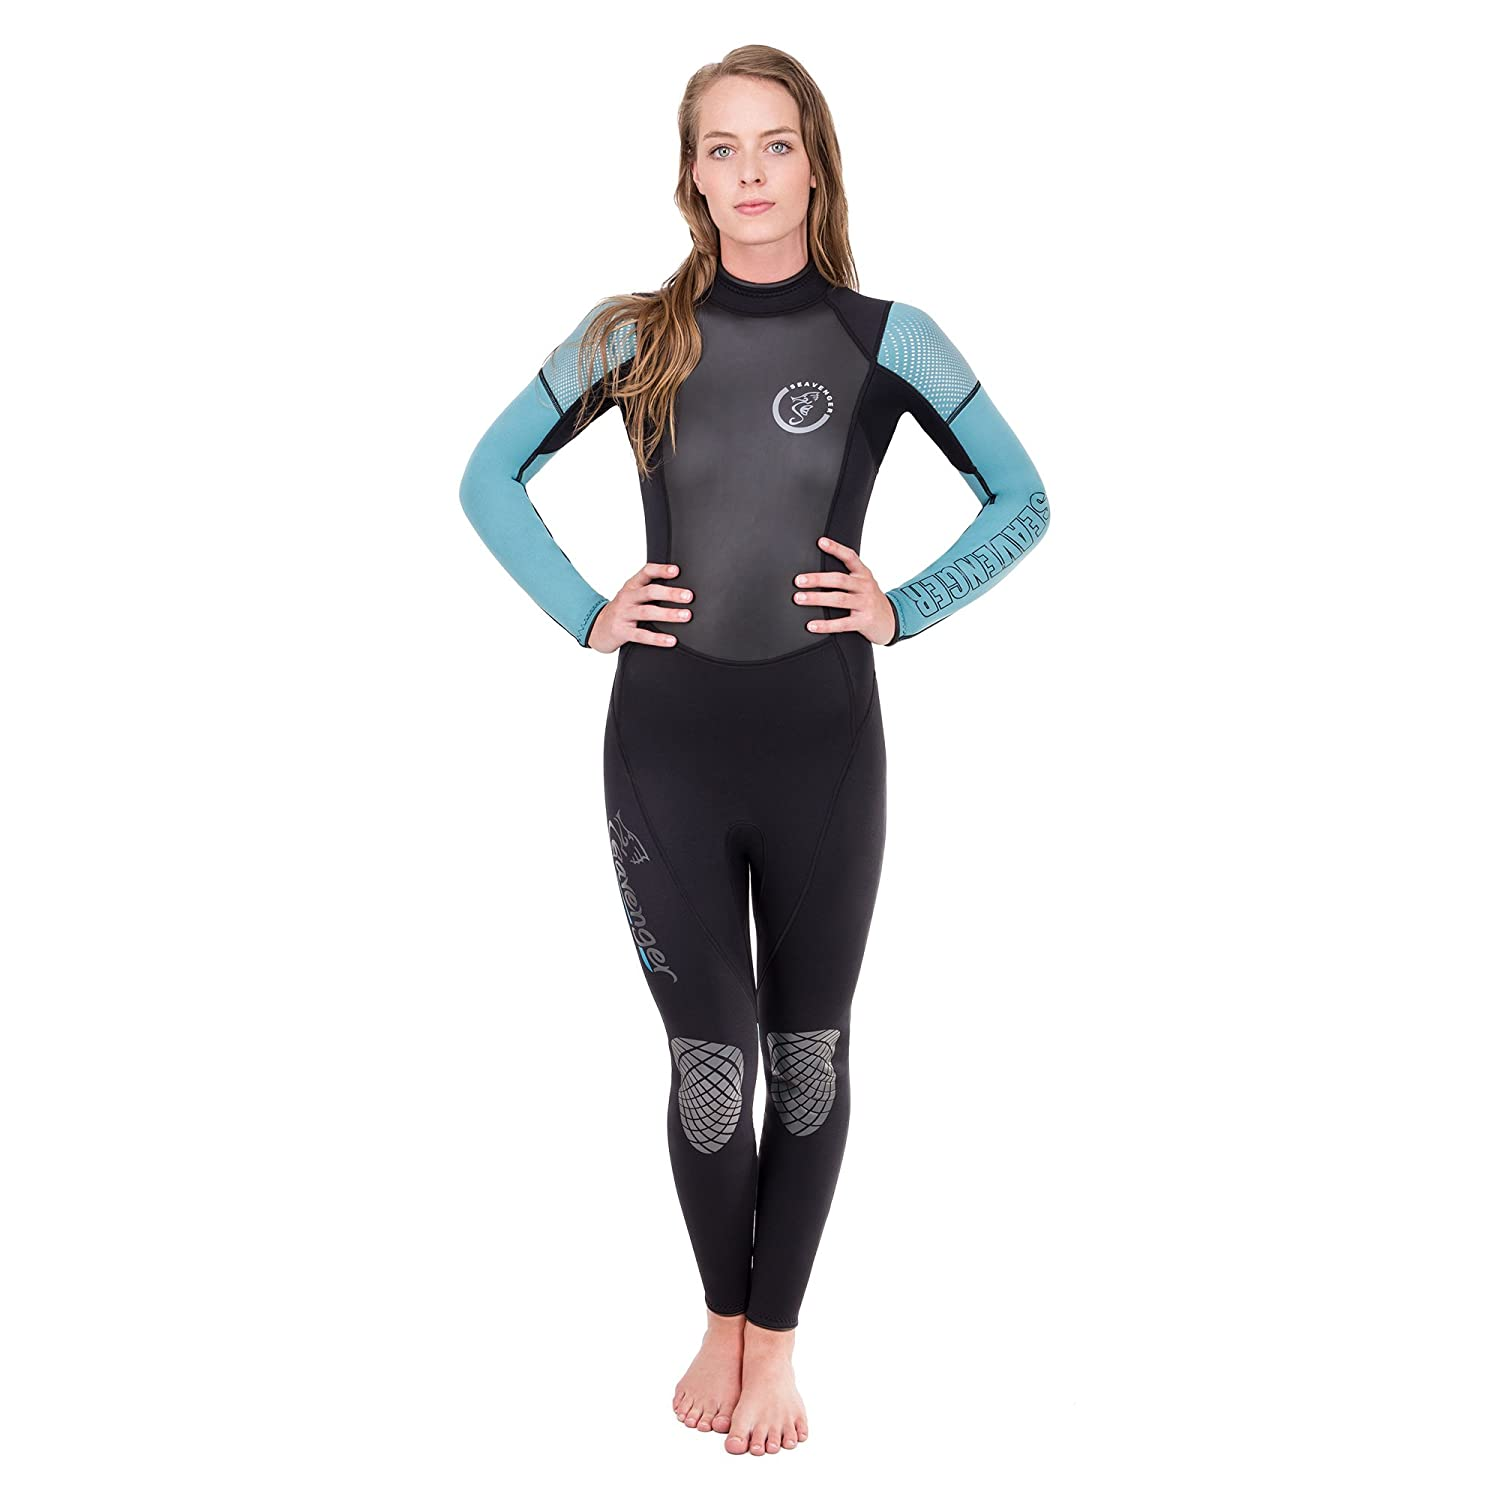 9c7c19d3f0 Amazon.com   Seavenger Odyssey 3mm Neoprene Wetsuit with Stretch Panels for  Snorkeling